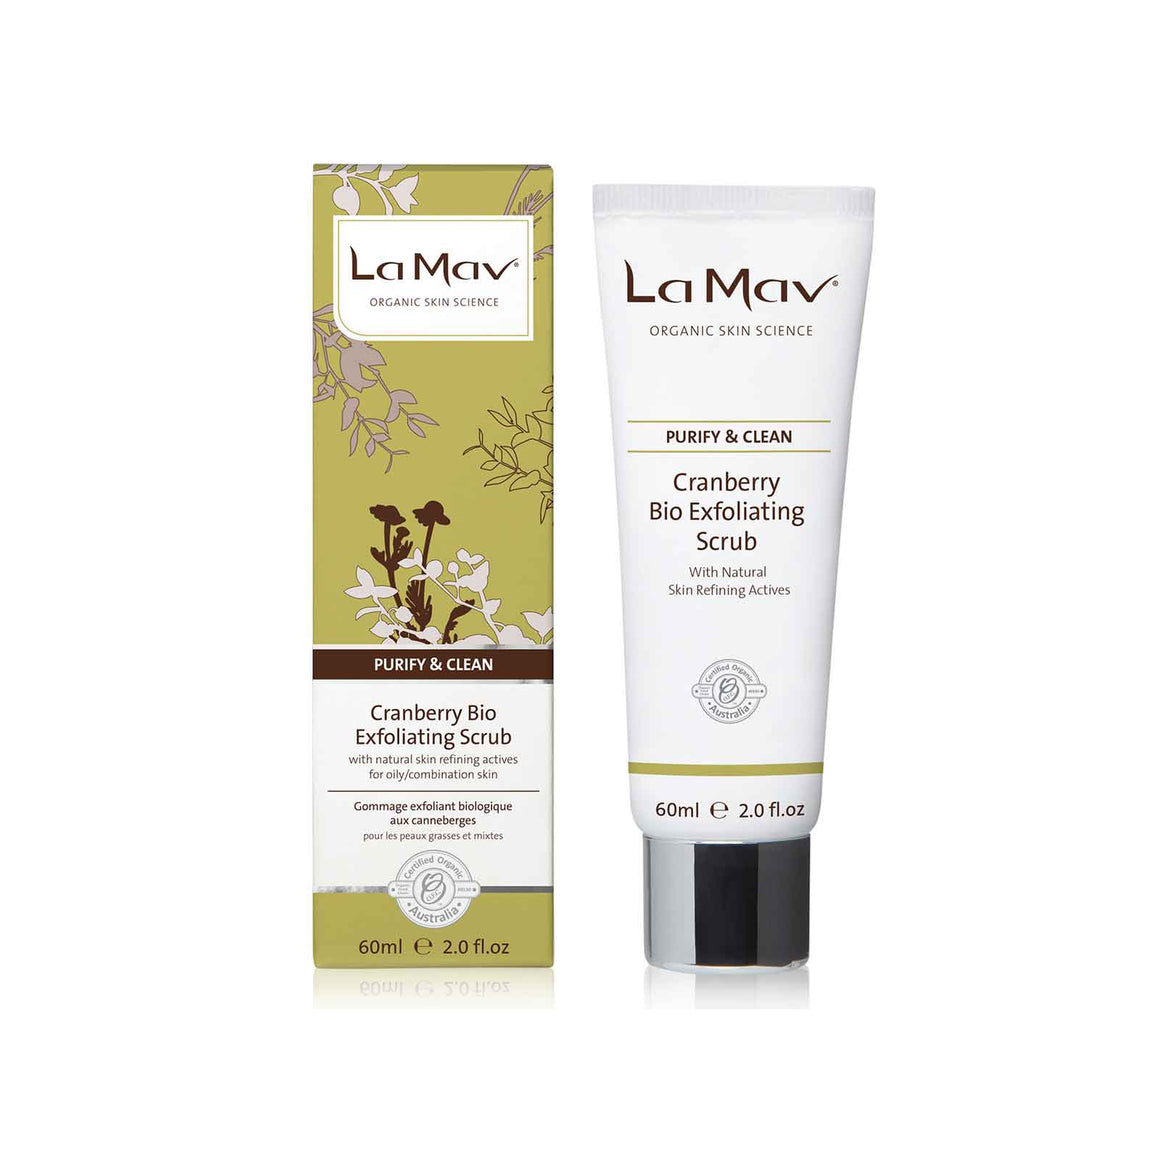 La Mav Cranberry Bio Exfoliating Scrub - 60ml